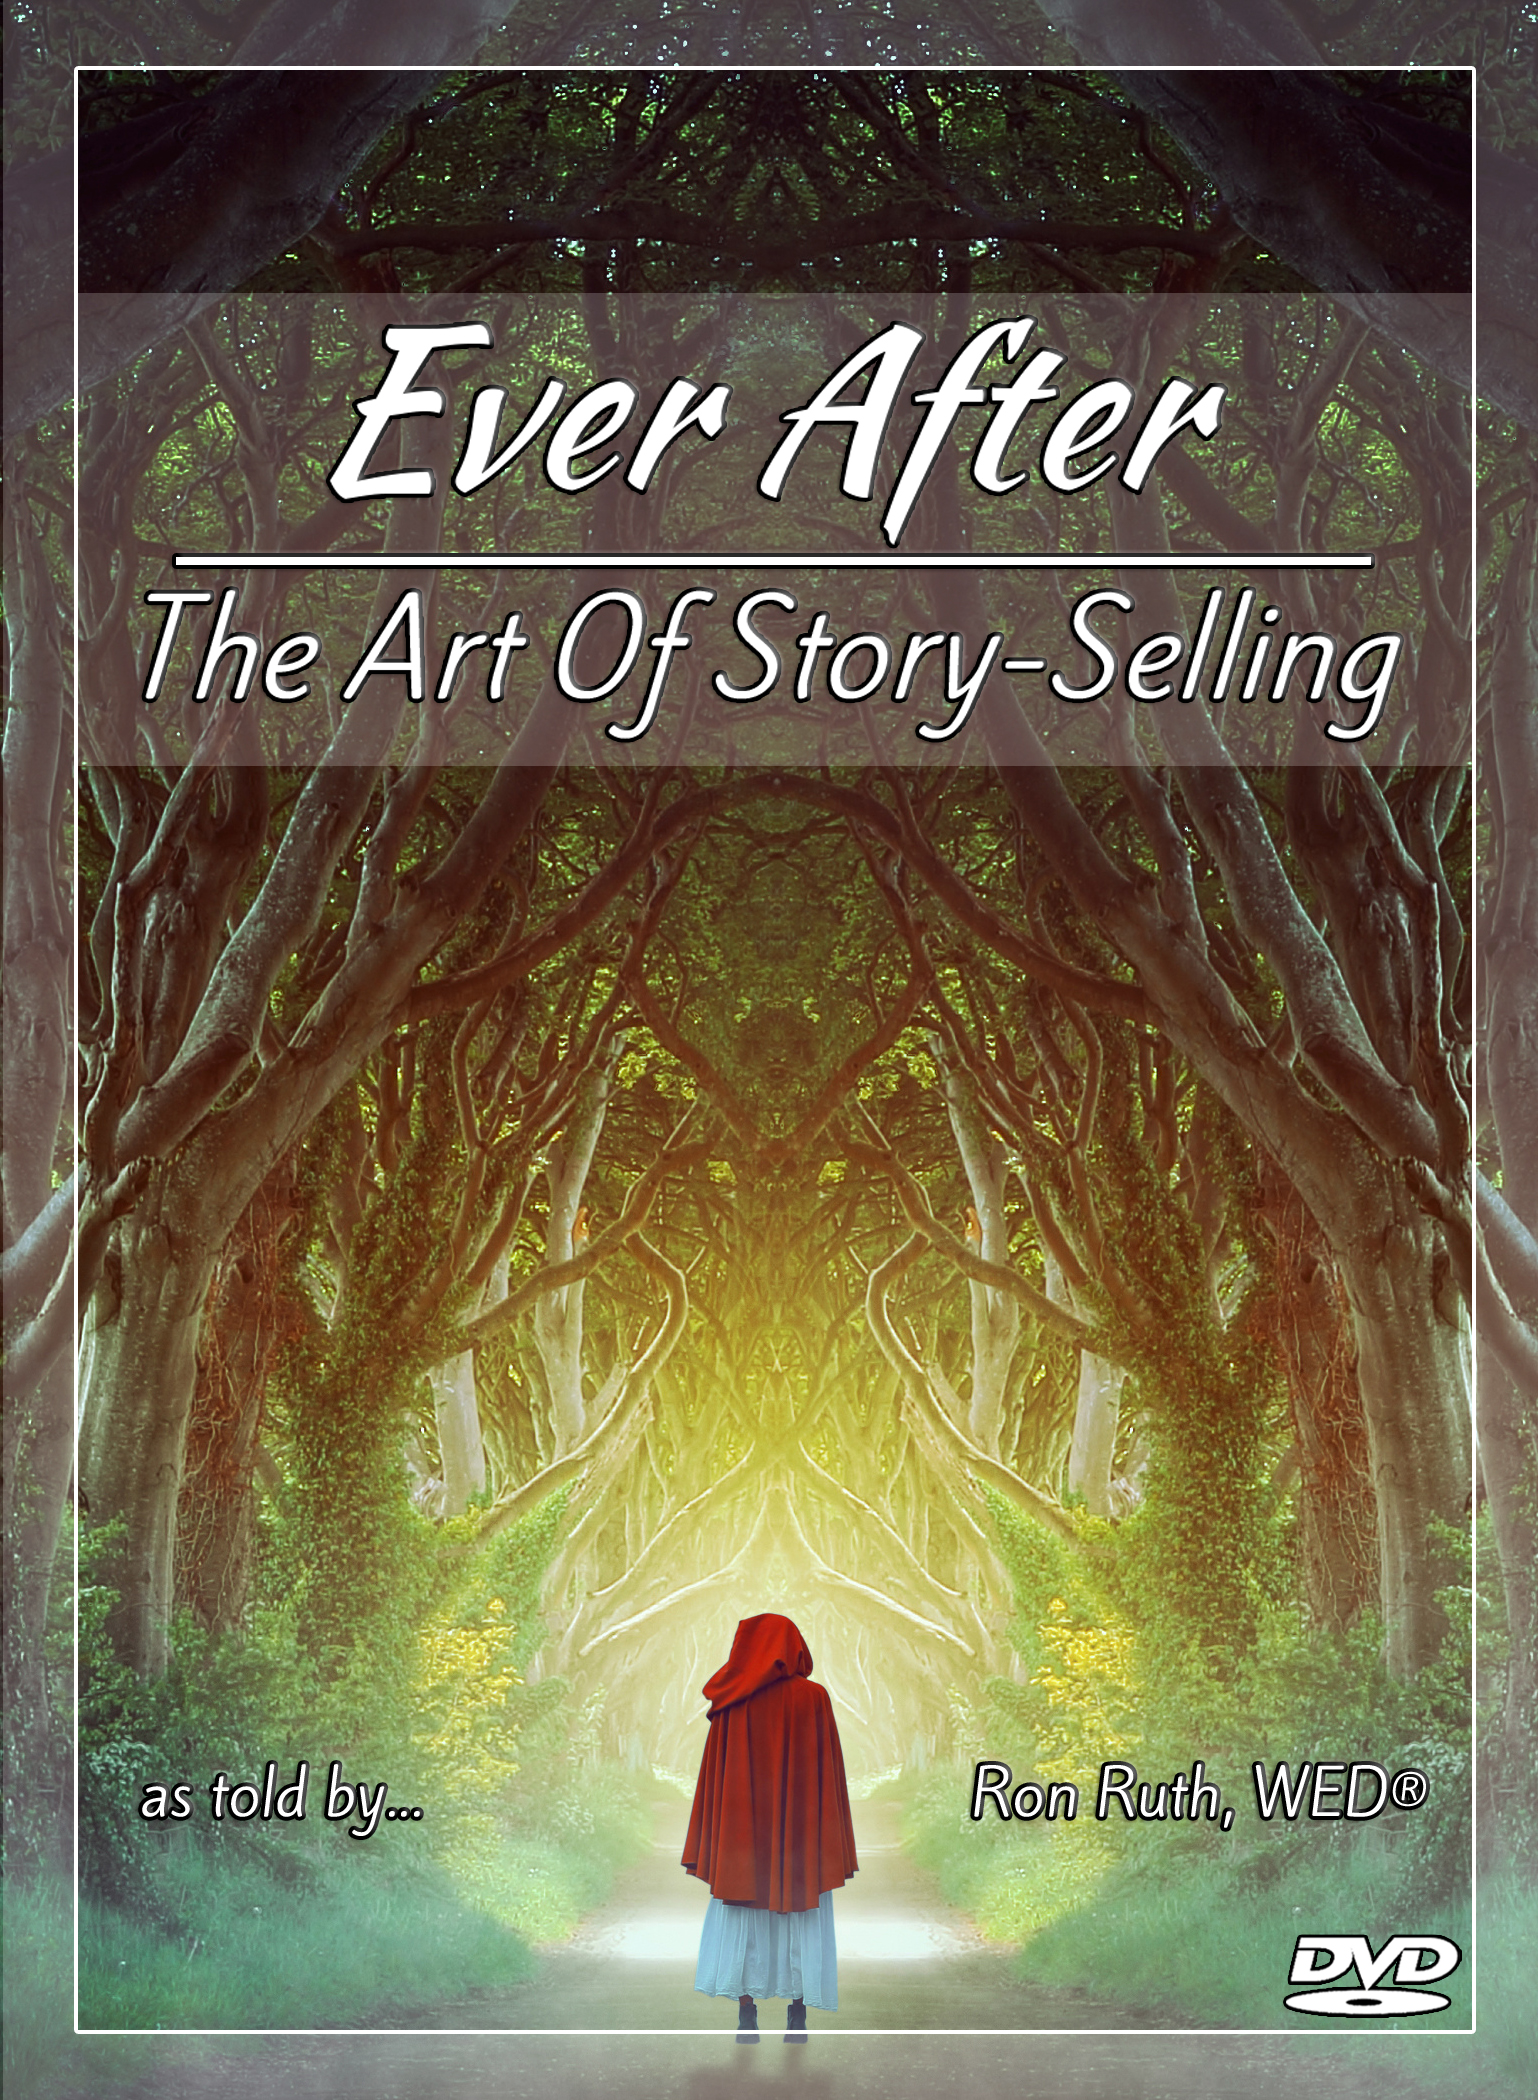 """Ron Ruth small business education, conference presentations and #inspiramaginativity on DVD - """"Ever After: The Art Of Story-Selling."""""""